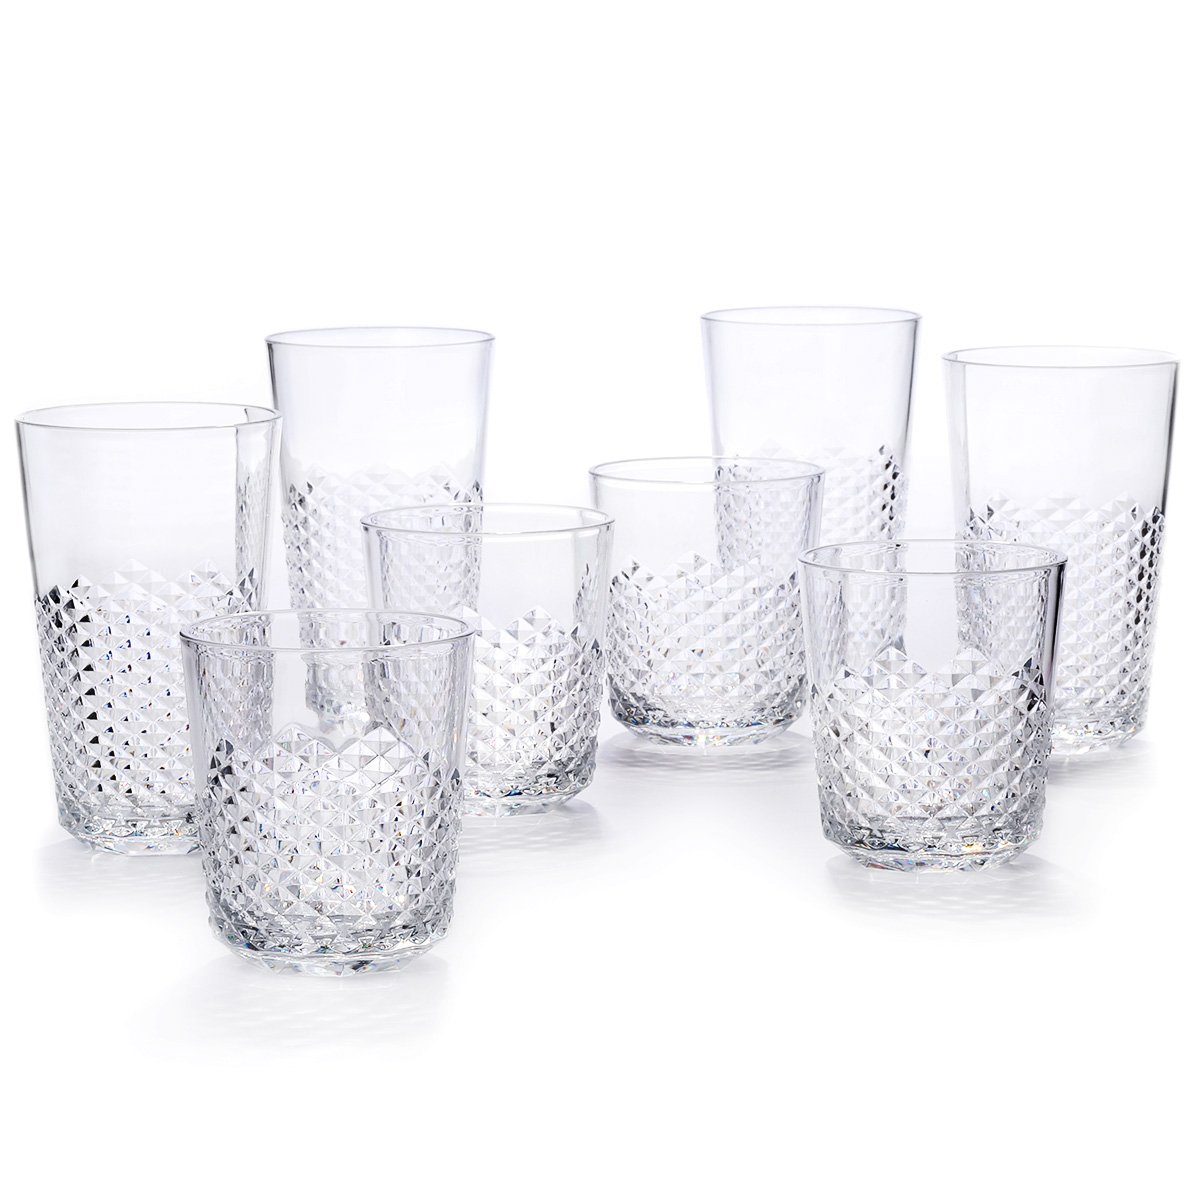 Cupture Diamond Plastic Tumblers BPA Free, 24 oz / 14 oz, 8-Pack (Clear) by Cupture (Image #1)